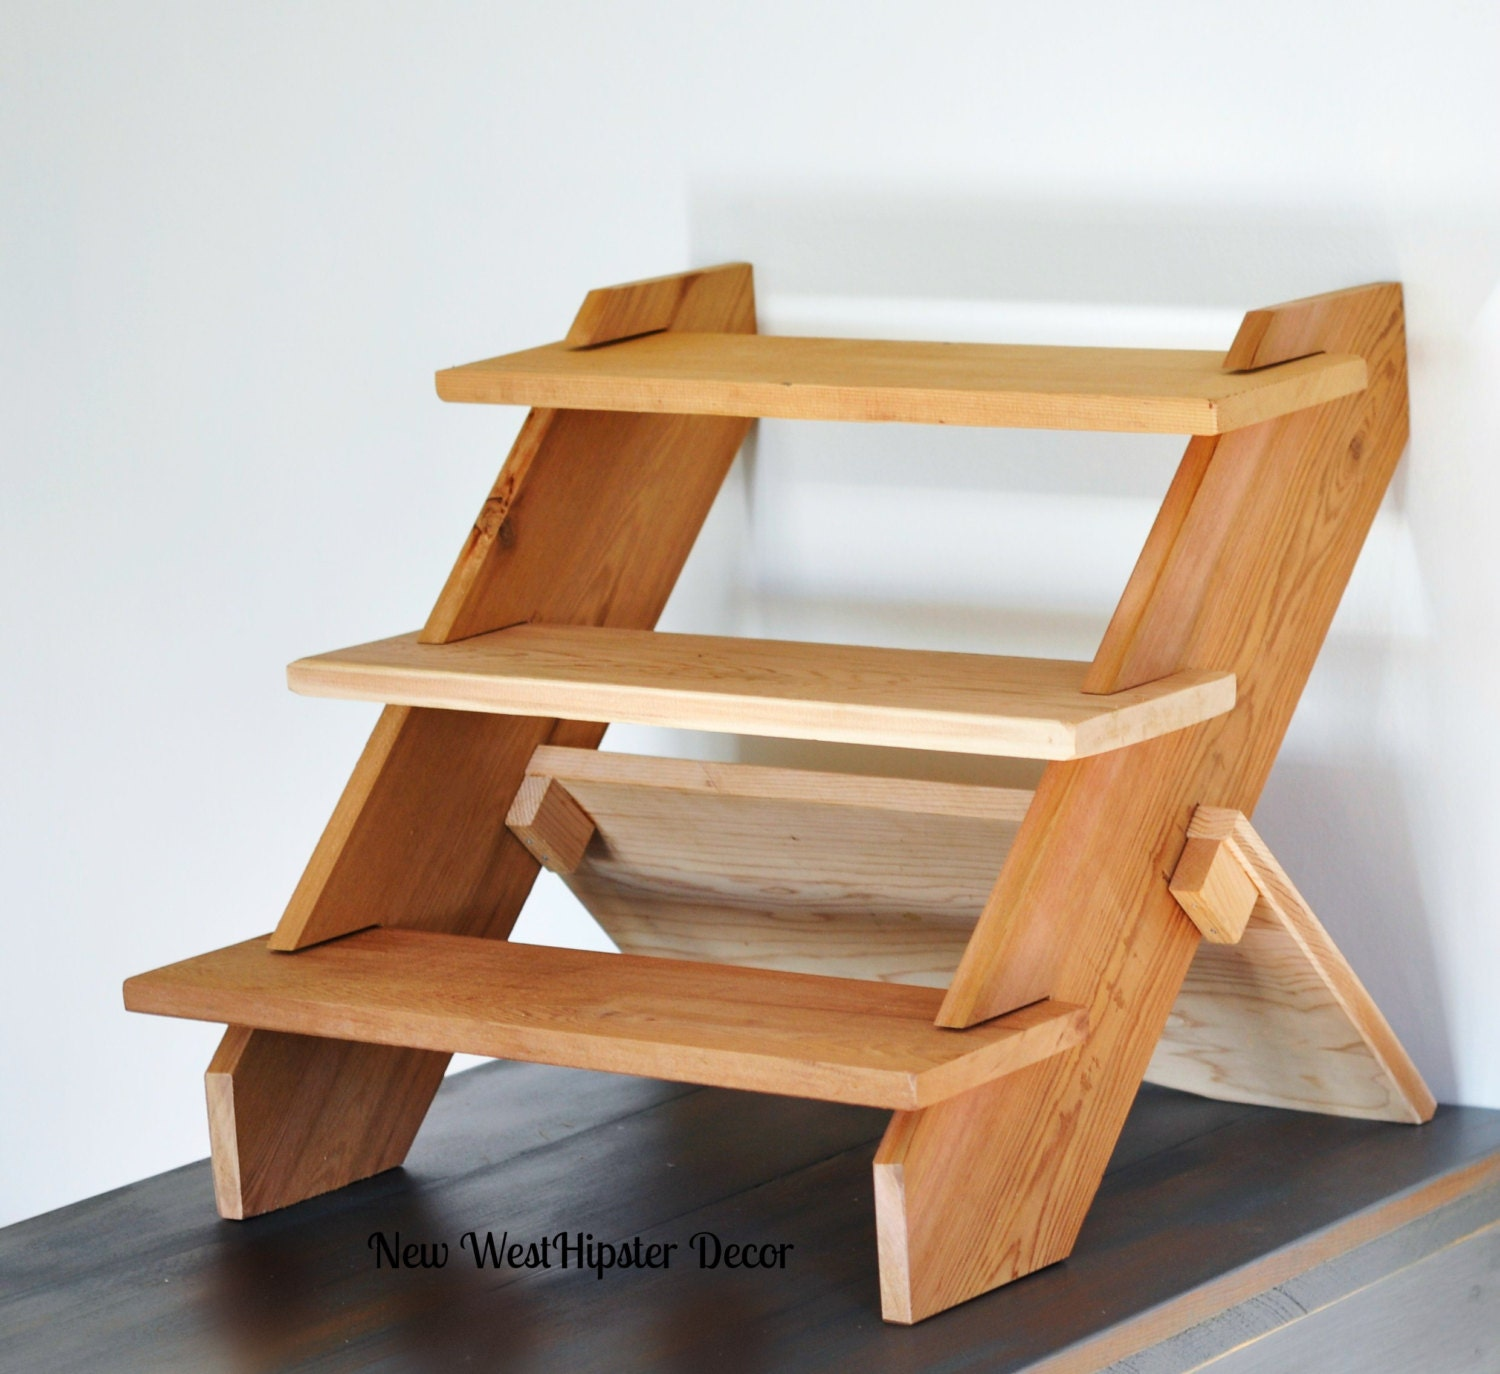 Display shelf tiered cedar for vendors by newwesthipsterdecor